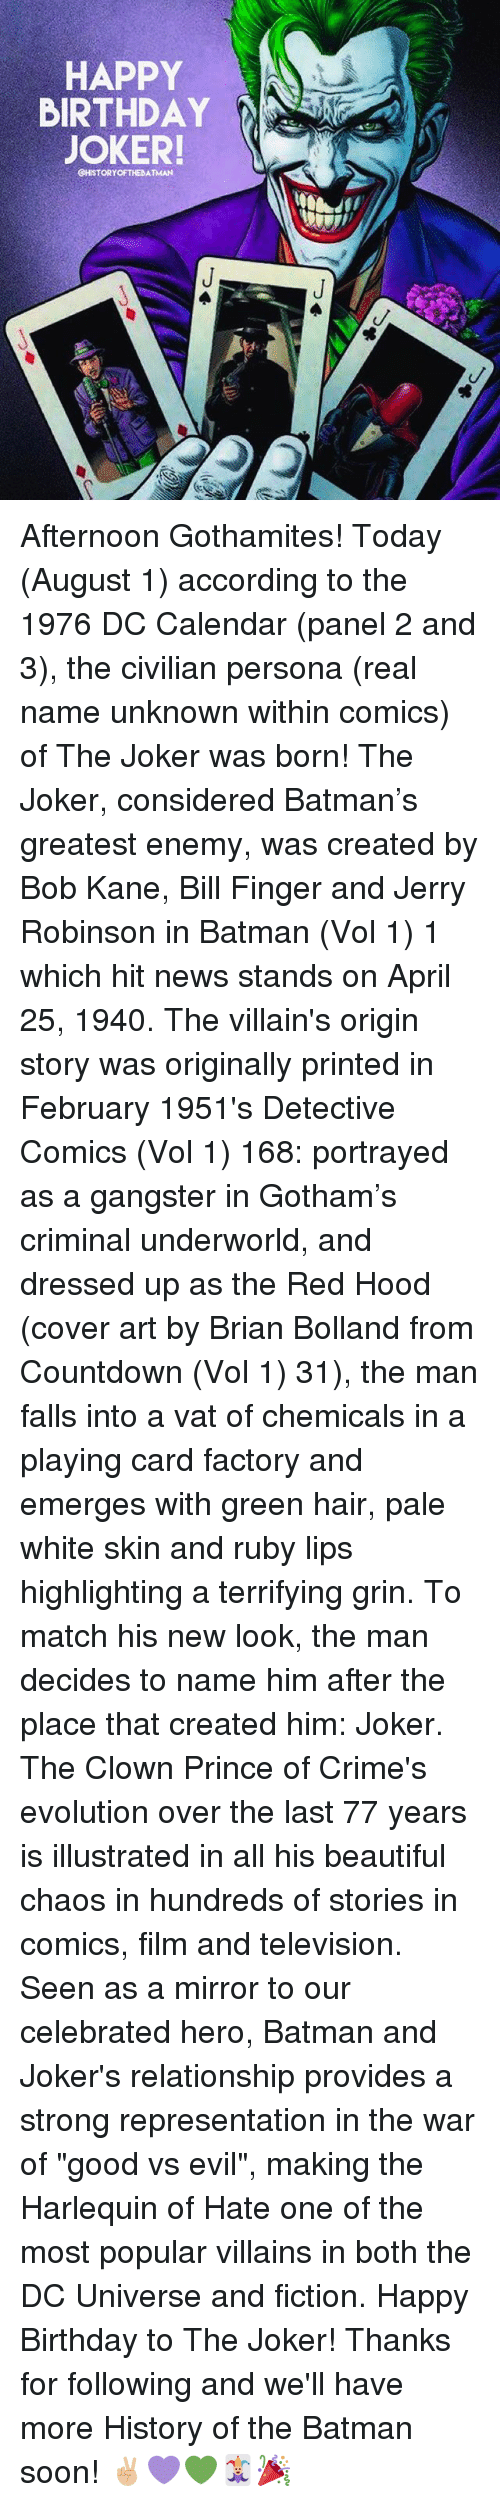 """white skin: HAPPY  BIRTHDAY  JOKER!  CHISTORYOFTHEBATMAN Afternoon Gothamites! Today (August 1) according to the 1976 DC Calendar (panel 2 and 3), the civilian persona (real name unknown within comics) of The Joker was born! The Joker, considered Batman's greatest enemy, was created by Bob Kane, Bill Finger and Jerry Robinson in Batman (Vol 1) 1 which hit news stands on April 25, 1940. The villain's origin story was originally printed in February 1951's Detective Comics (Vol 1) 168: portrayed as a gangster in Gotham's criminal underworld, and dressed up as the Red Hood (cover art by Brian Bolland from Countdown (Vol 1) 31), the man falls into a vat of chemicals in a playing card factory and emerges with green hair, pale white skin and ruby lips highlighting a terrifying grin. To match his new look, the man decides to name him after the place that created him: Joker. The Clown Prince of Crime's evolution over the last 77 years is illustrated in all his beautiful chaos in hundreds of stories in comics, film and television. Seen as a mirror to our celebrated hero, Batman and Joker's relationship provides a strong representation in the war of """"good vs evil"""", making the Harlequin of Hate one of the most popular villains in both the DC Universe and fiction. Happy Birthday to The Joker! Thanks for following and we'll have more History of the Batman soon! ✌🏼💜💚🃏🎉"""